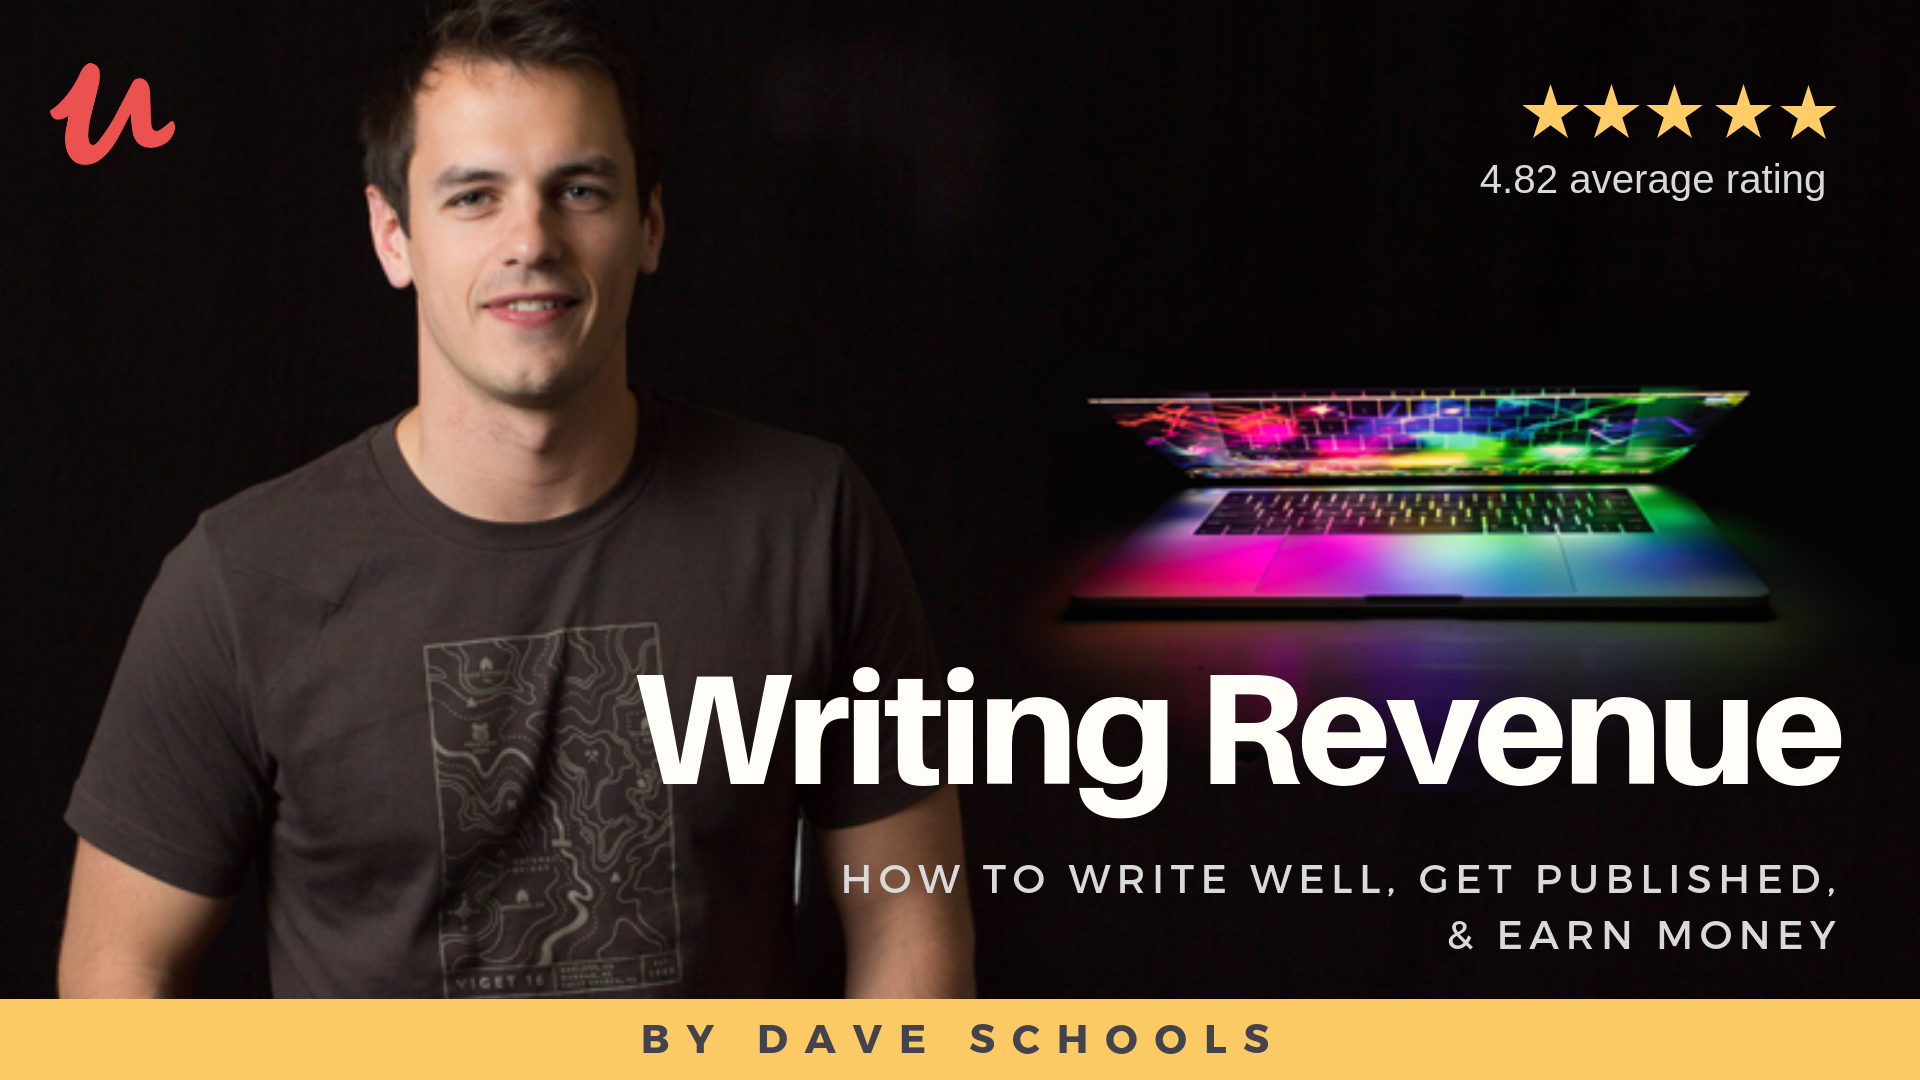 In 30 video lessons,  Writing Revenue  will teach you how to build an audience, pitch major publications, and earn substantial revenue as a writer.